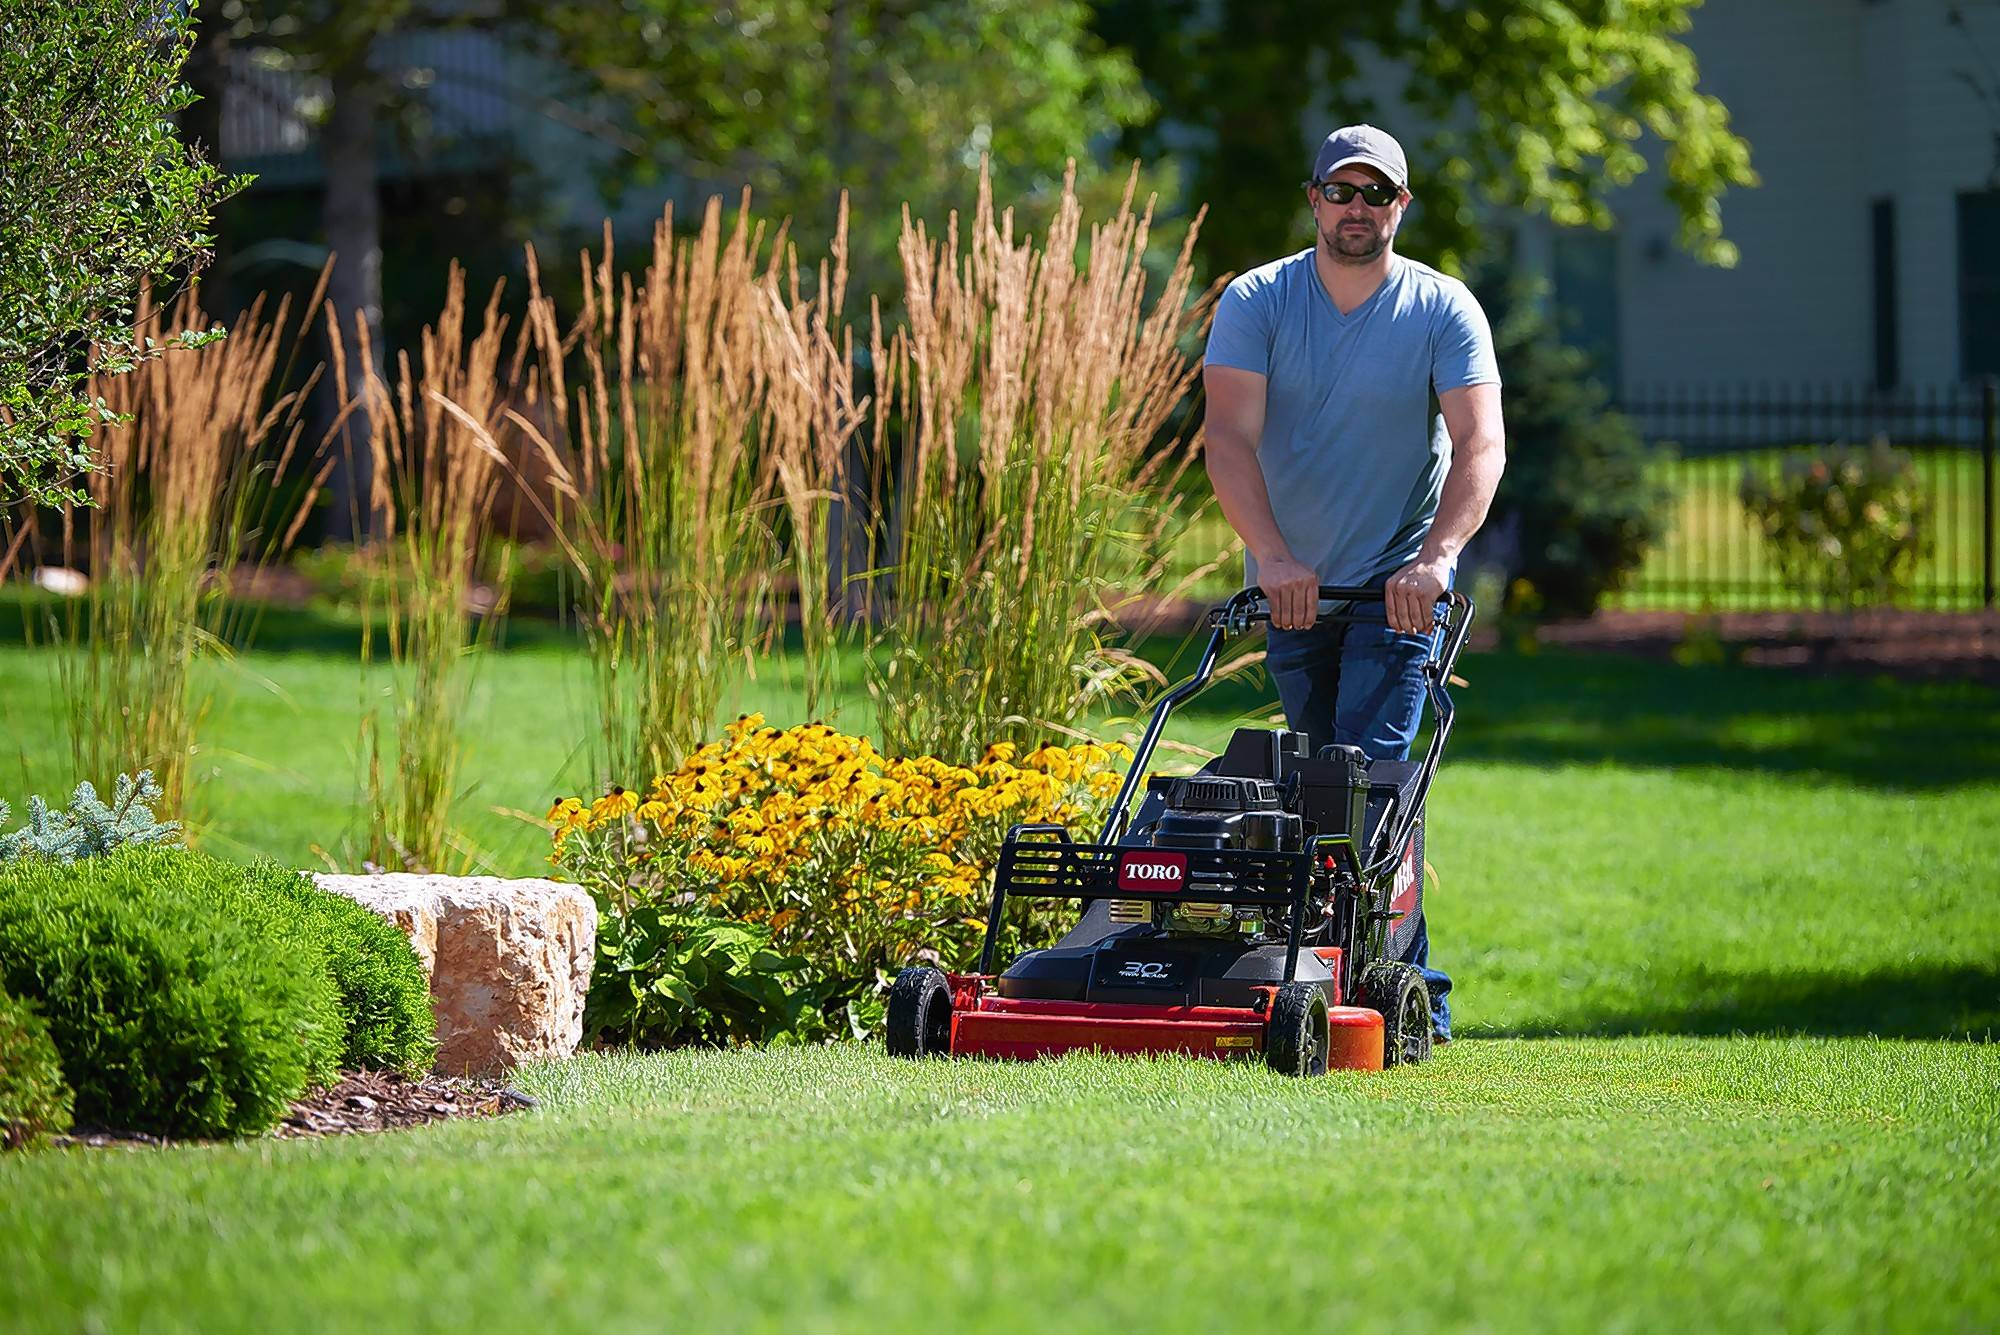 Torou0027s Self Propelled Mower Offer Easier Maneuverability And Are Up To  30 Inches Wide